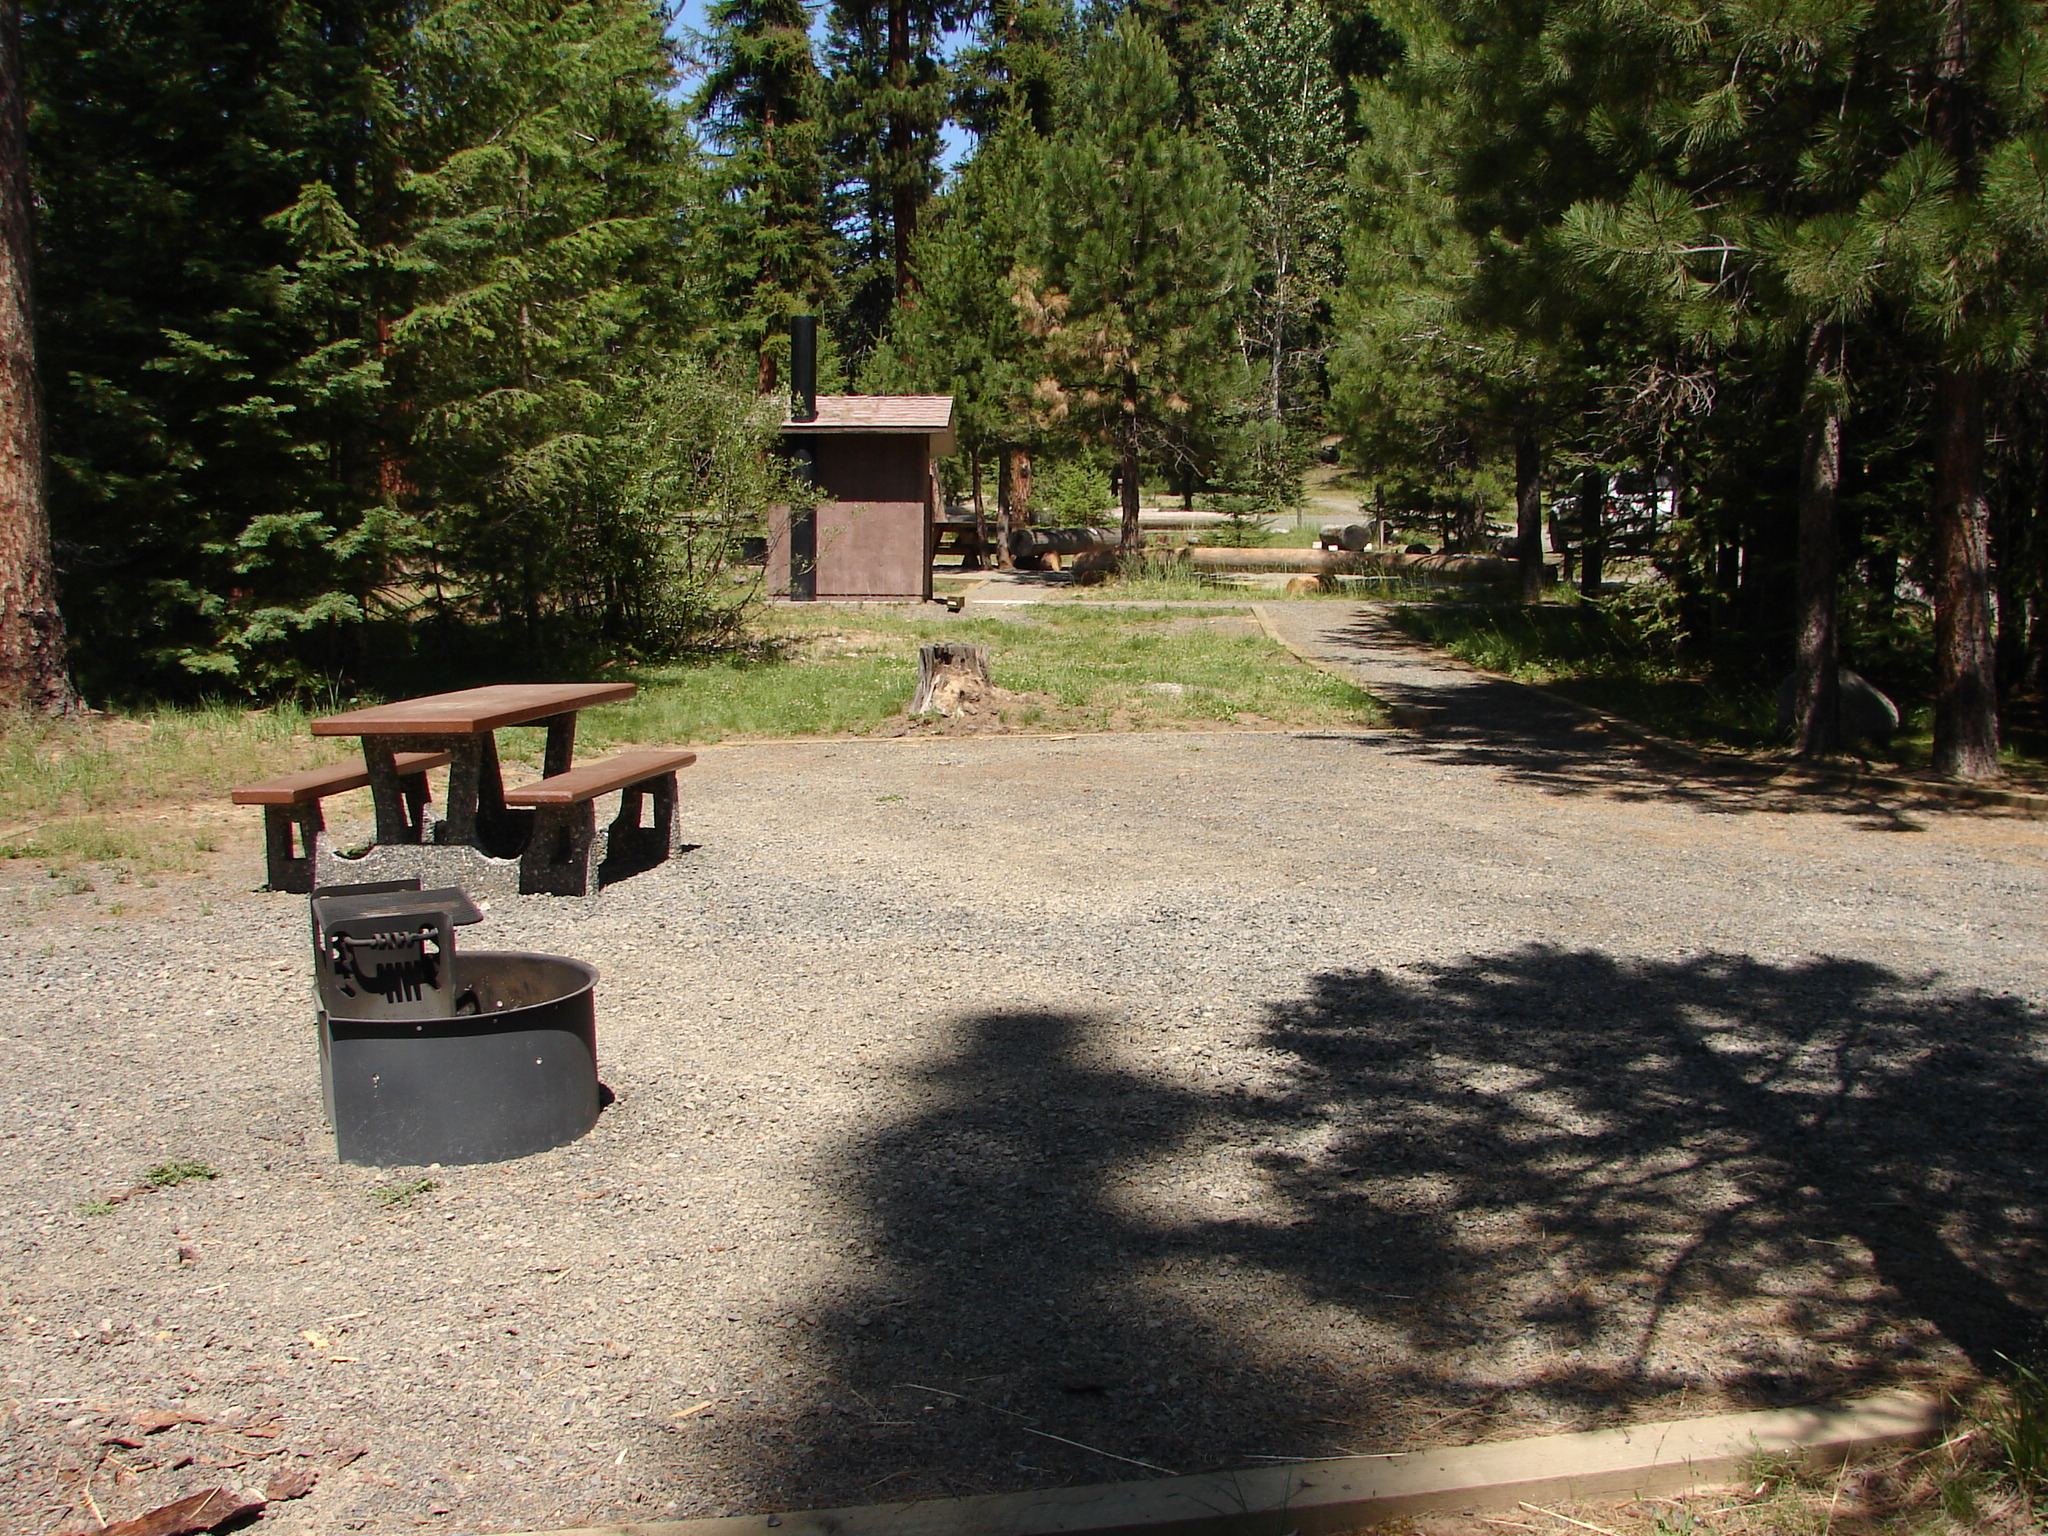 Forest campground with toilet building and pine trees near picnic table